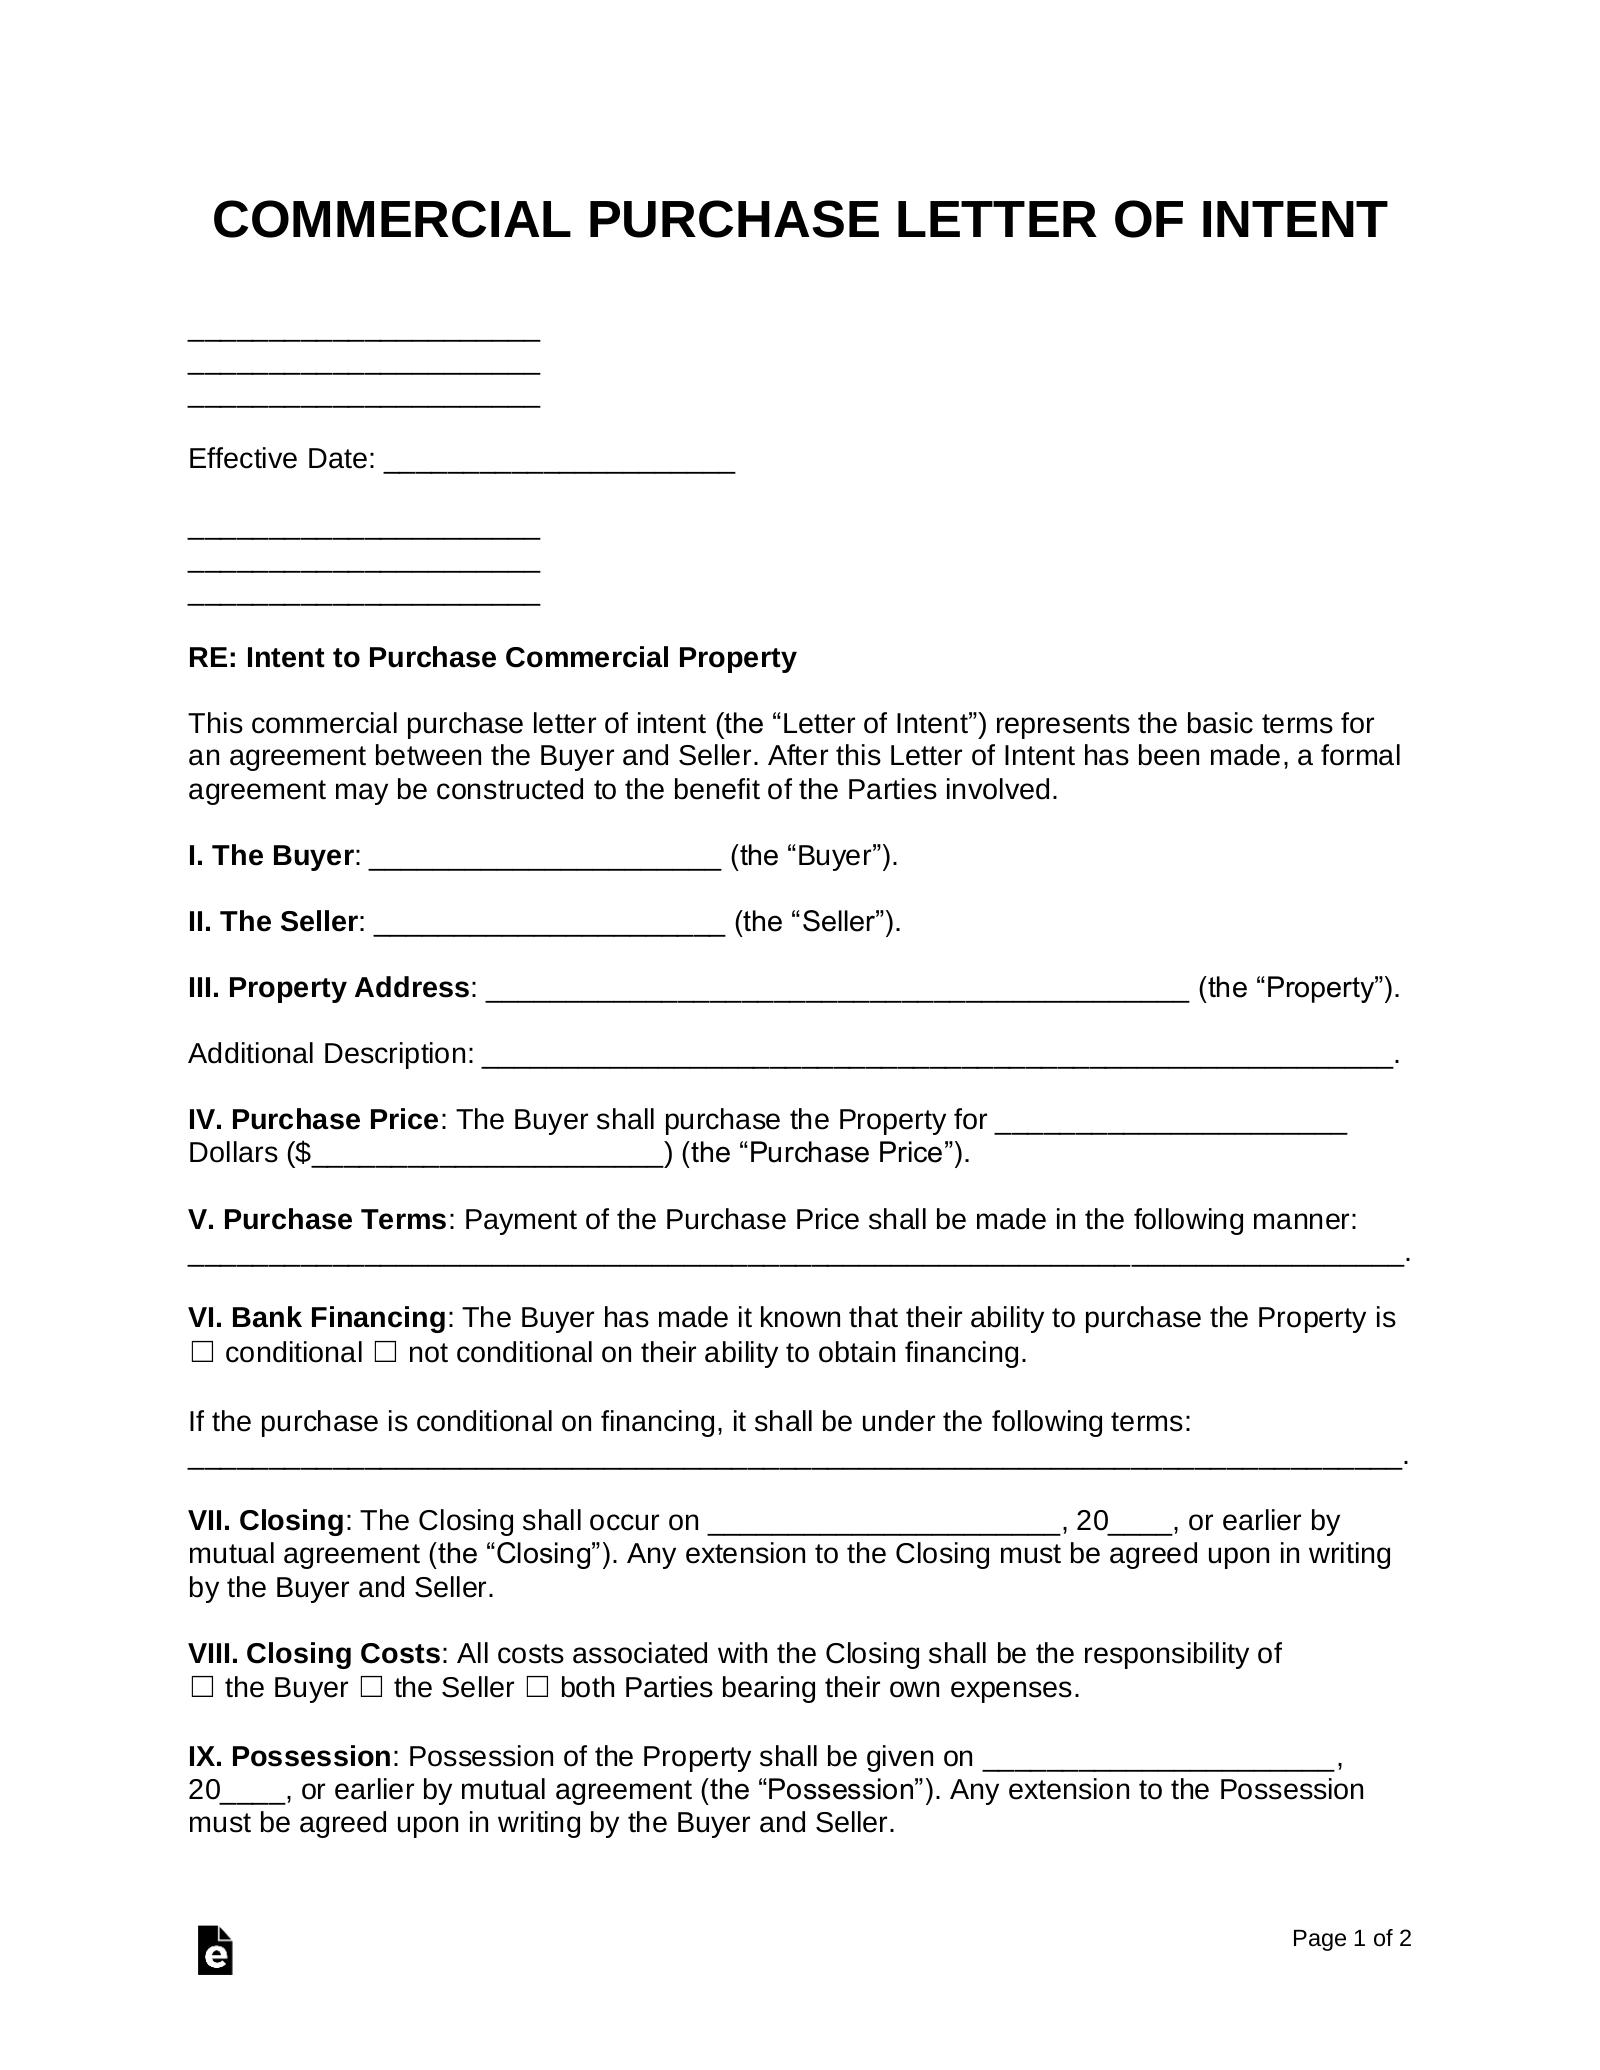 Letter Of Intent To Do Business Example from eforms.com